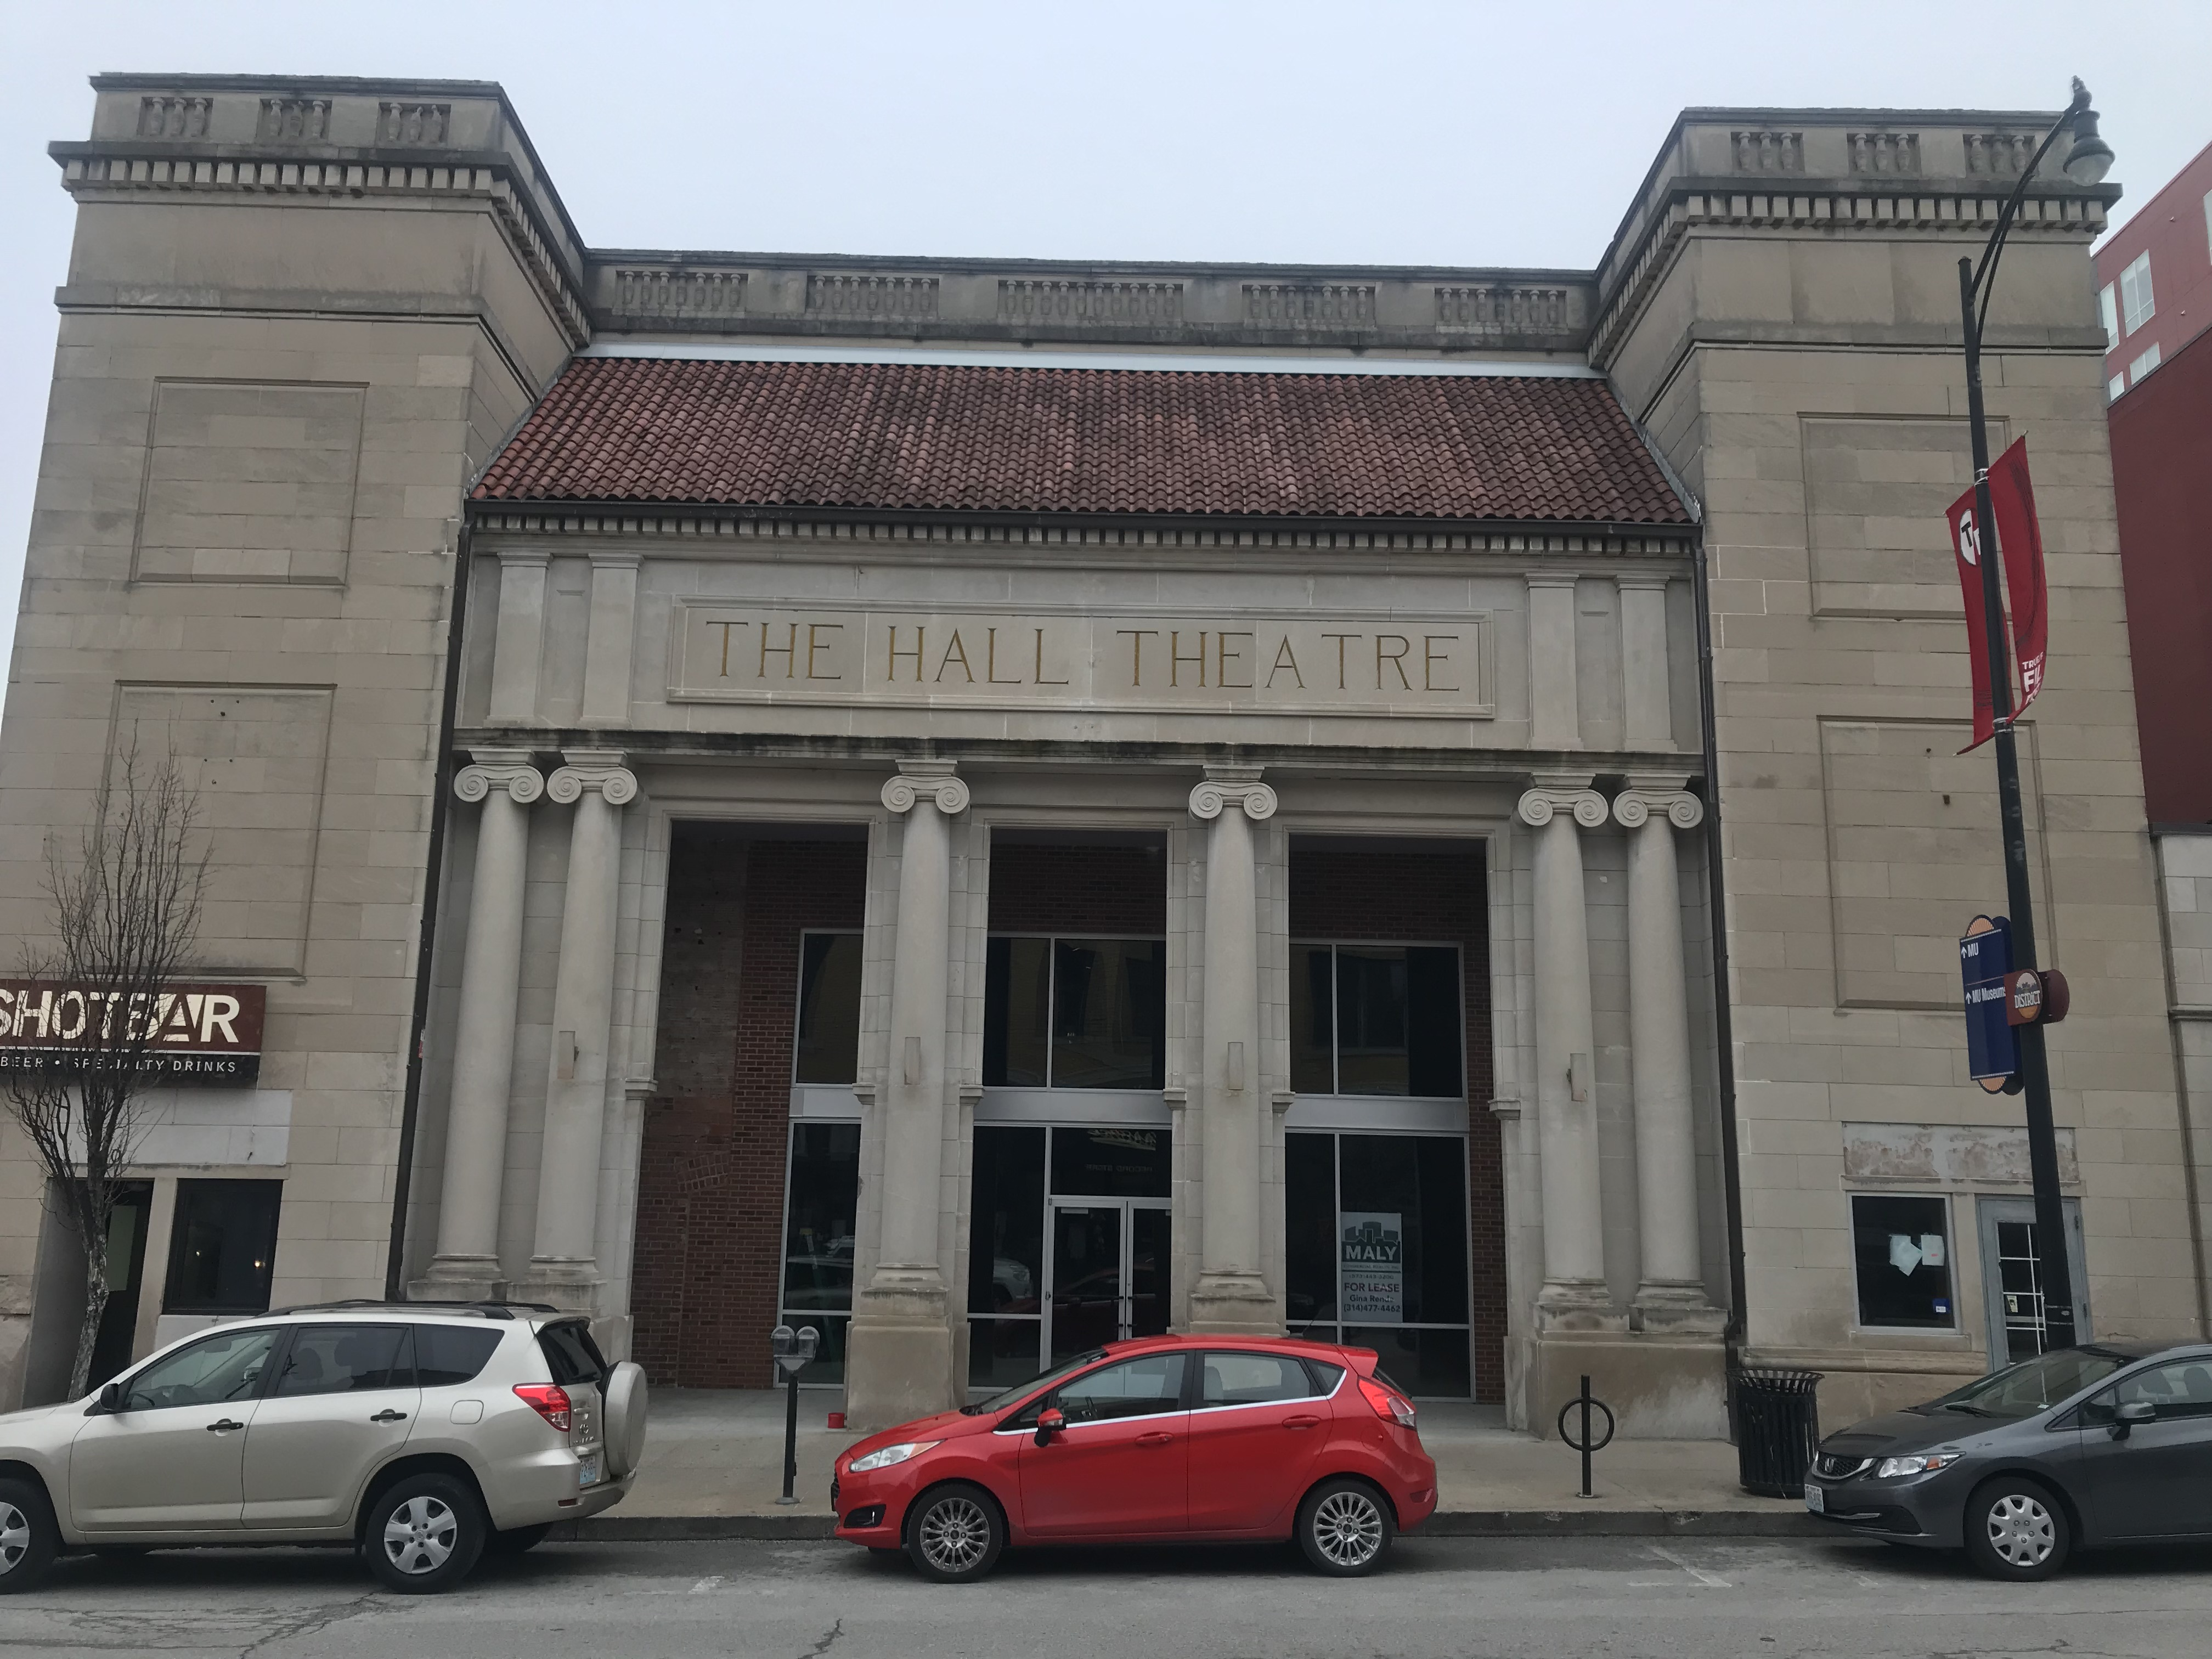 102 S 9th  Street – Hall Theatre